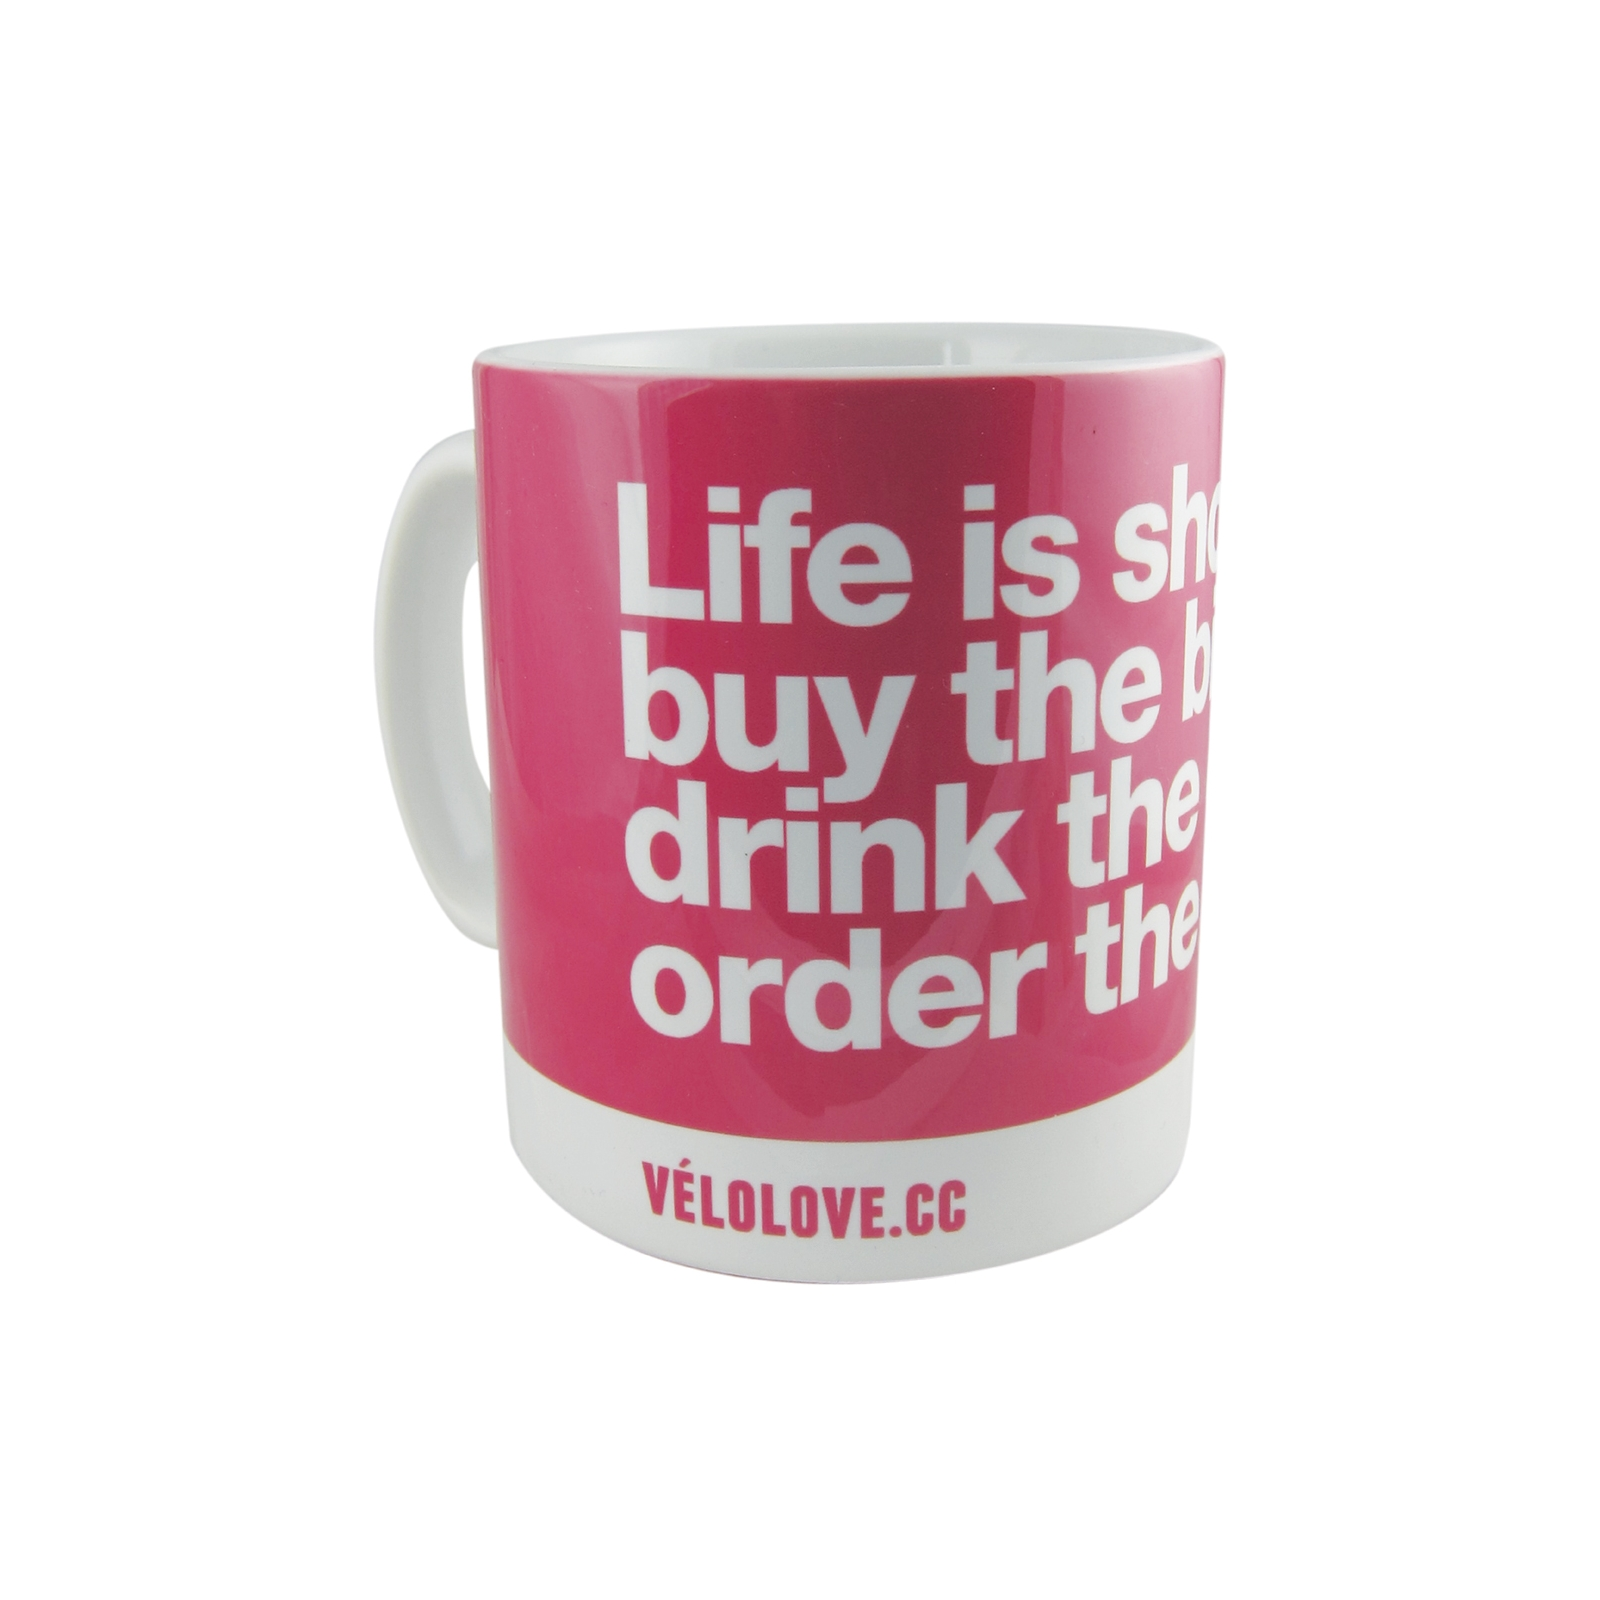 Velolove Life is short, buy the bike, drink the coffee, ord | Multimedier > Tilbehør